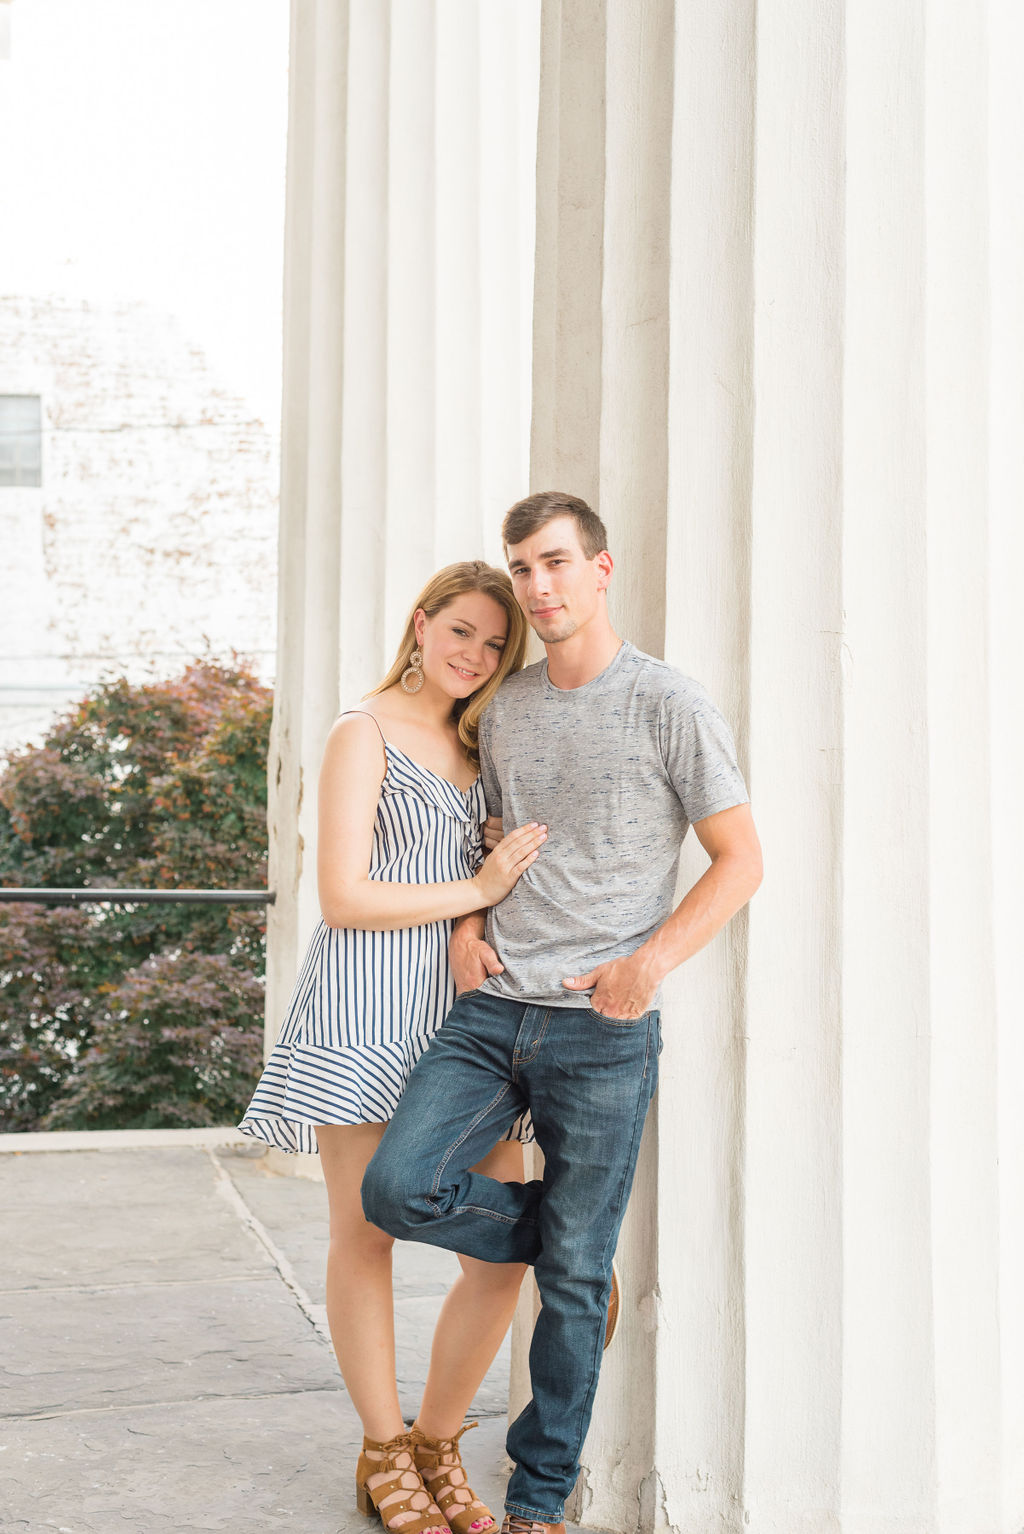 Playful and Relaxed Virginia Engagement Session Sommer Rea Weddings & Portraits57